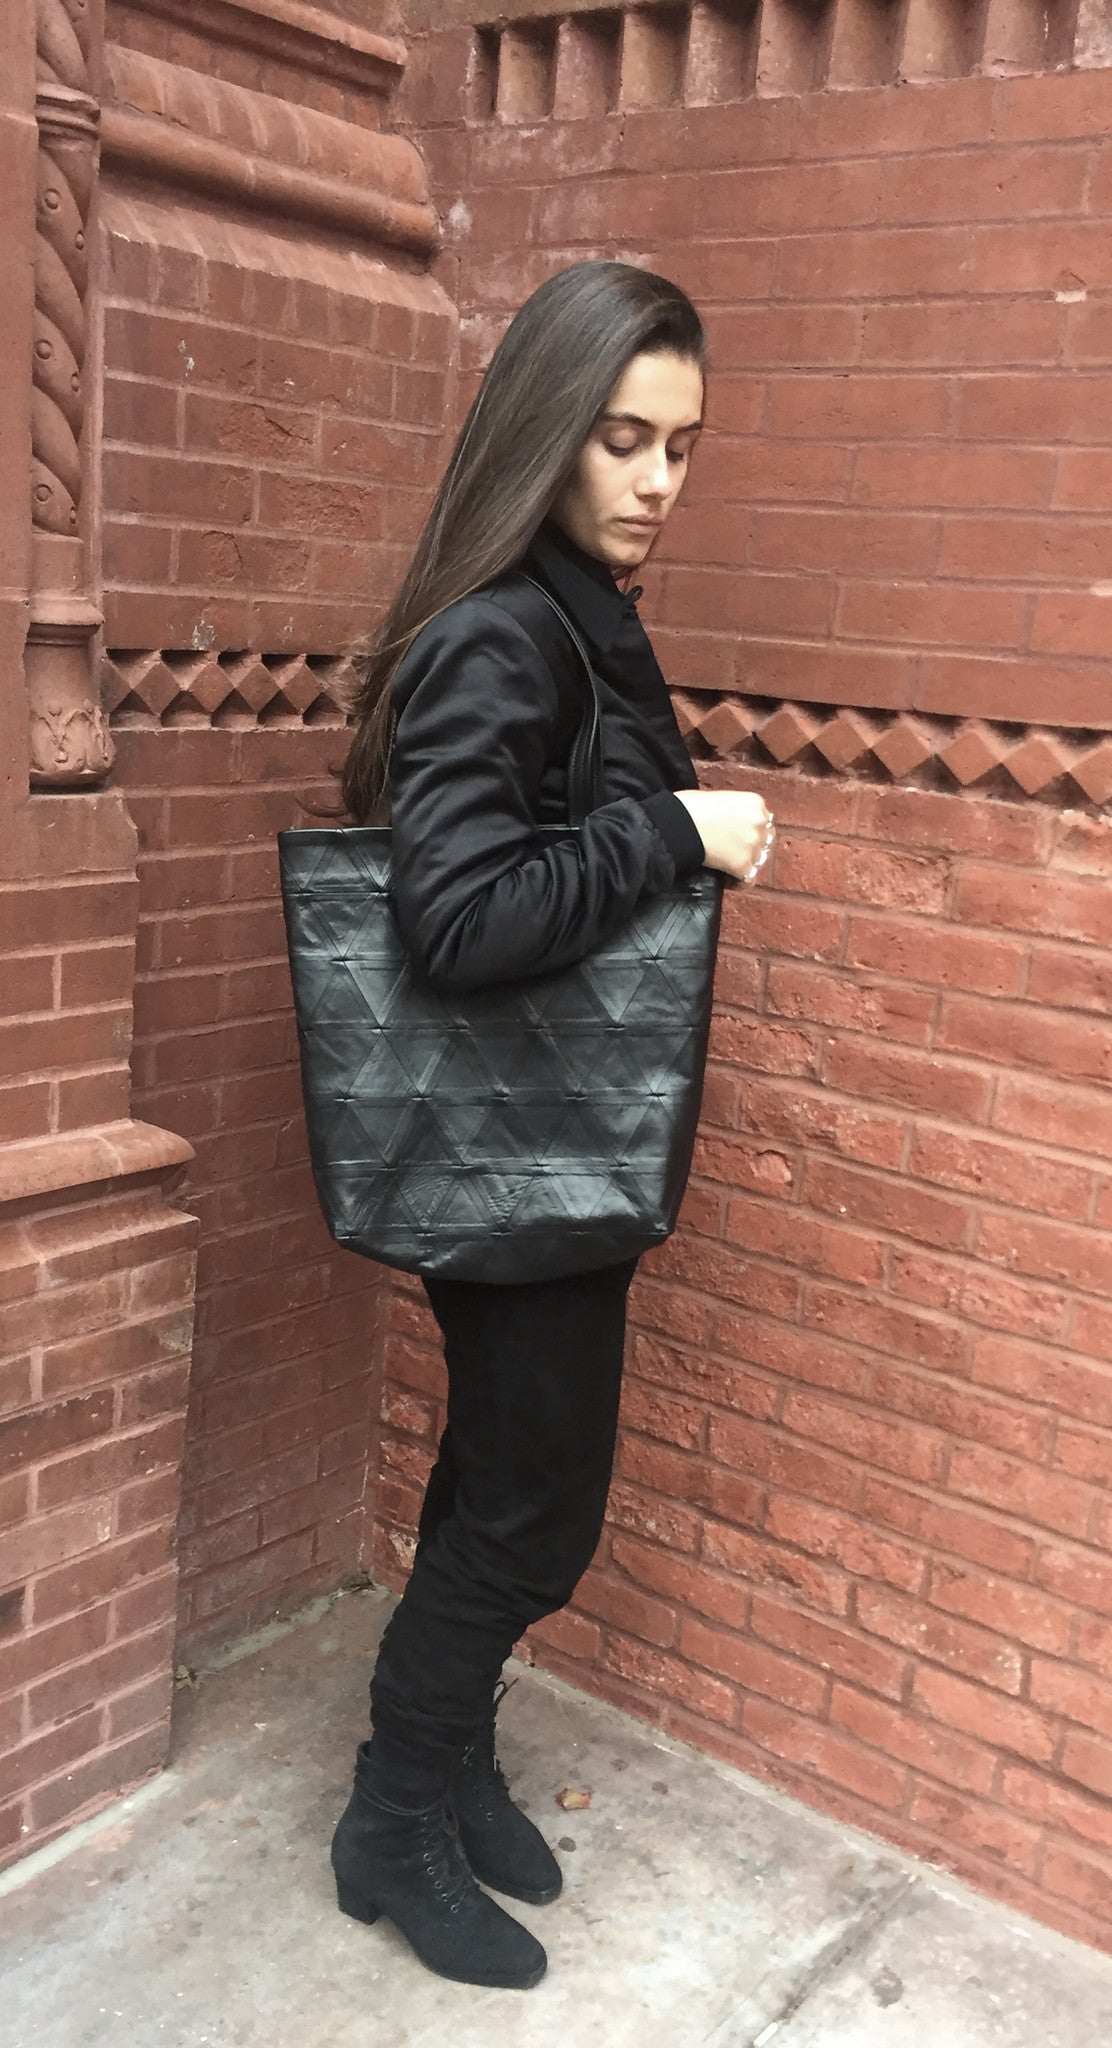 Triangle Patchwork Tote Black leather Wendy Nichol Handbag purse Bag Designer Handmade in NYC